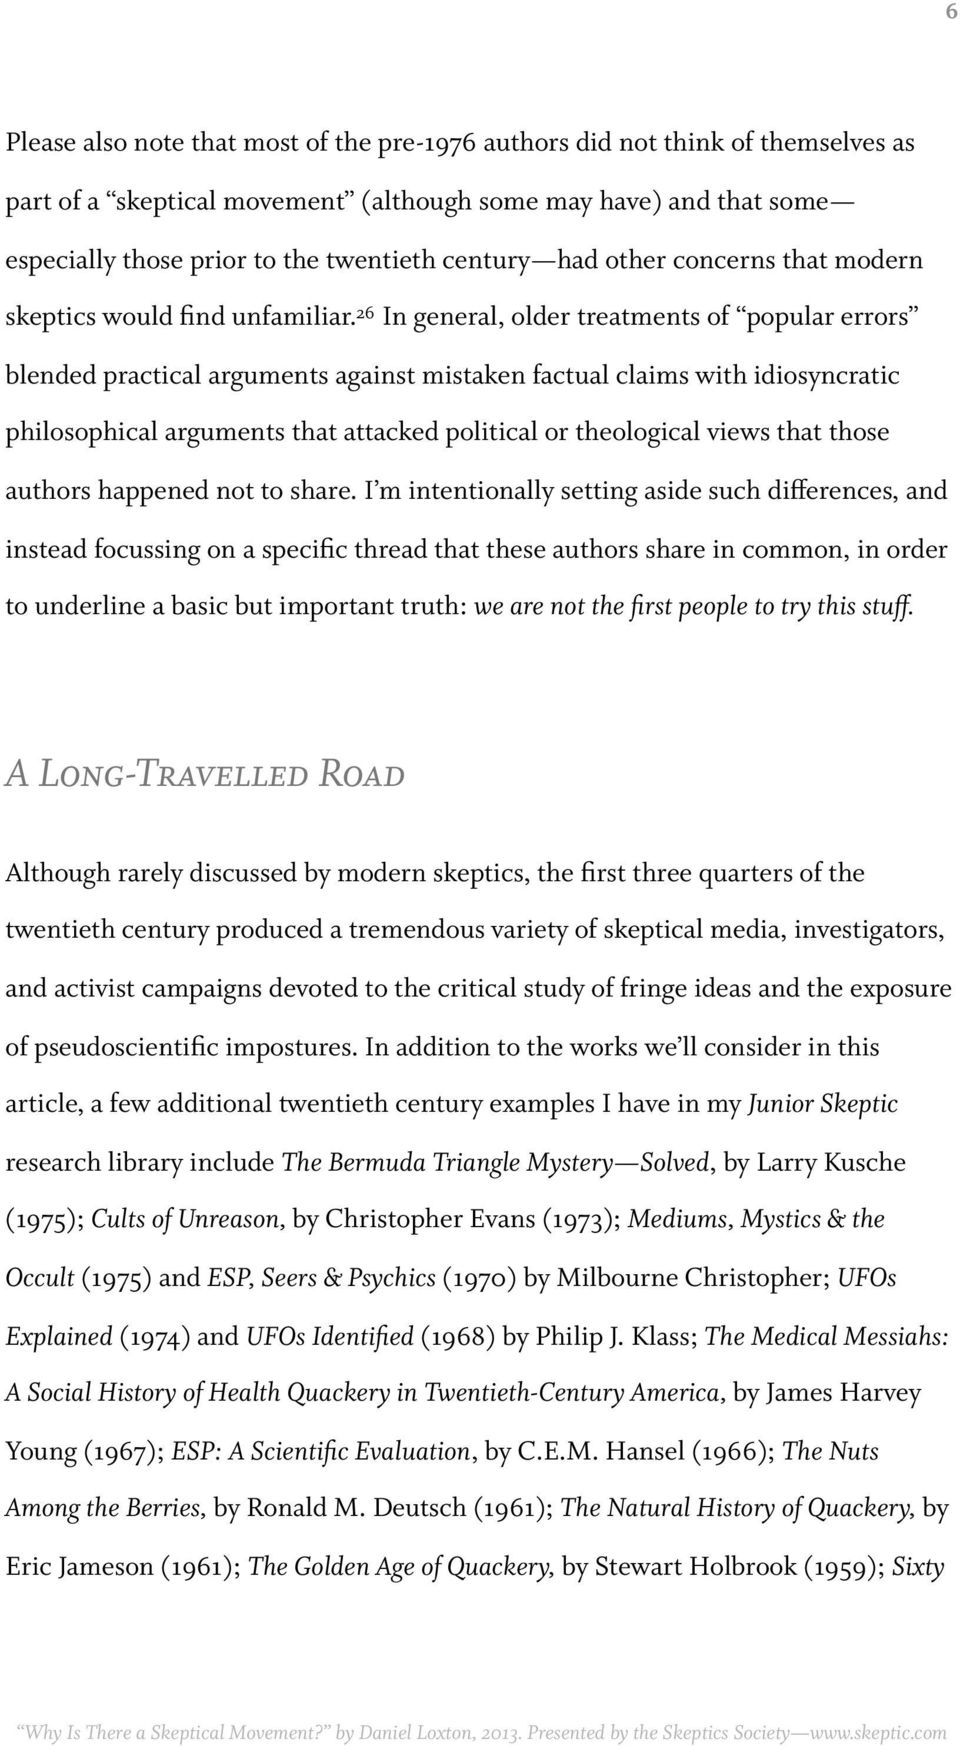 26 In general, older treatments of popular errors blended practical arguments against mistaken factual claims with idiosyncratic philosophical arguments that attacked political or theological views